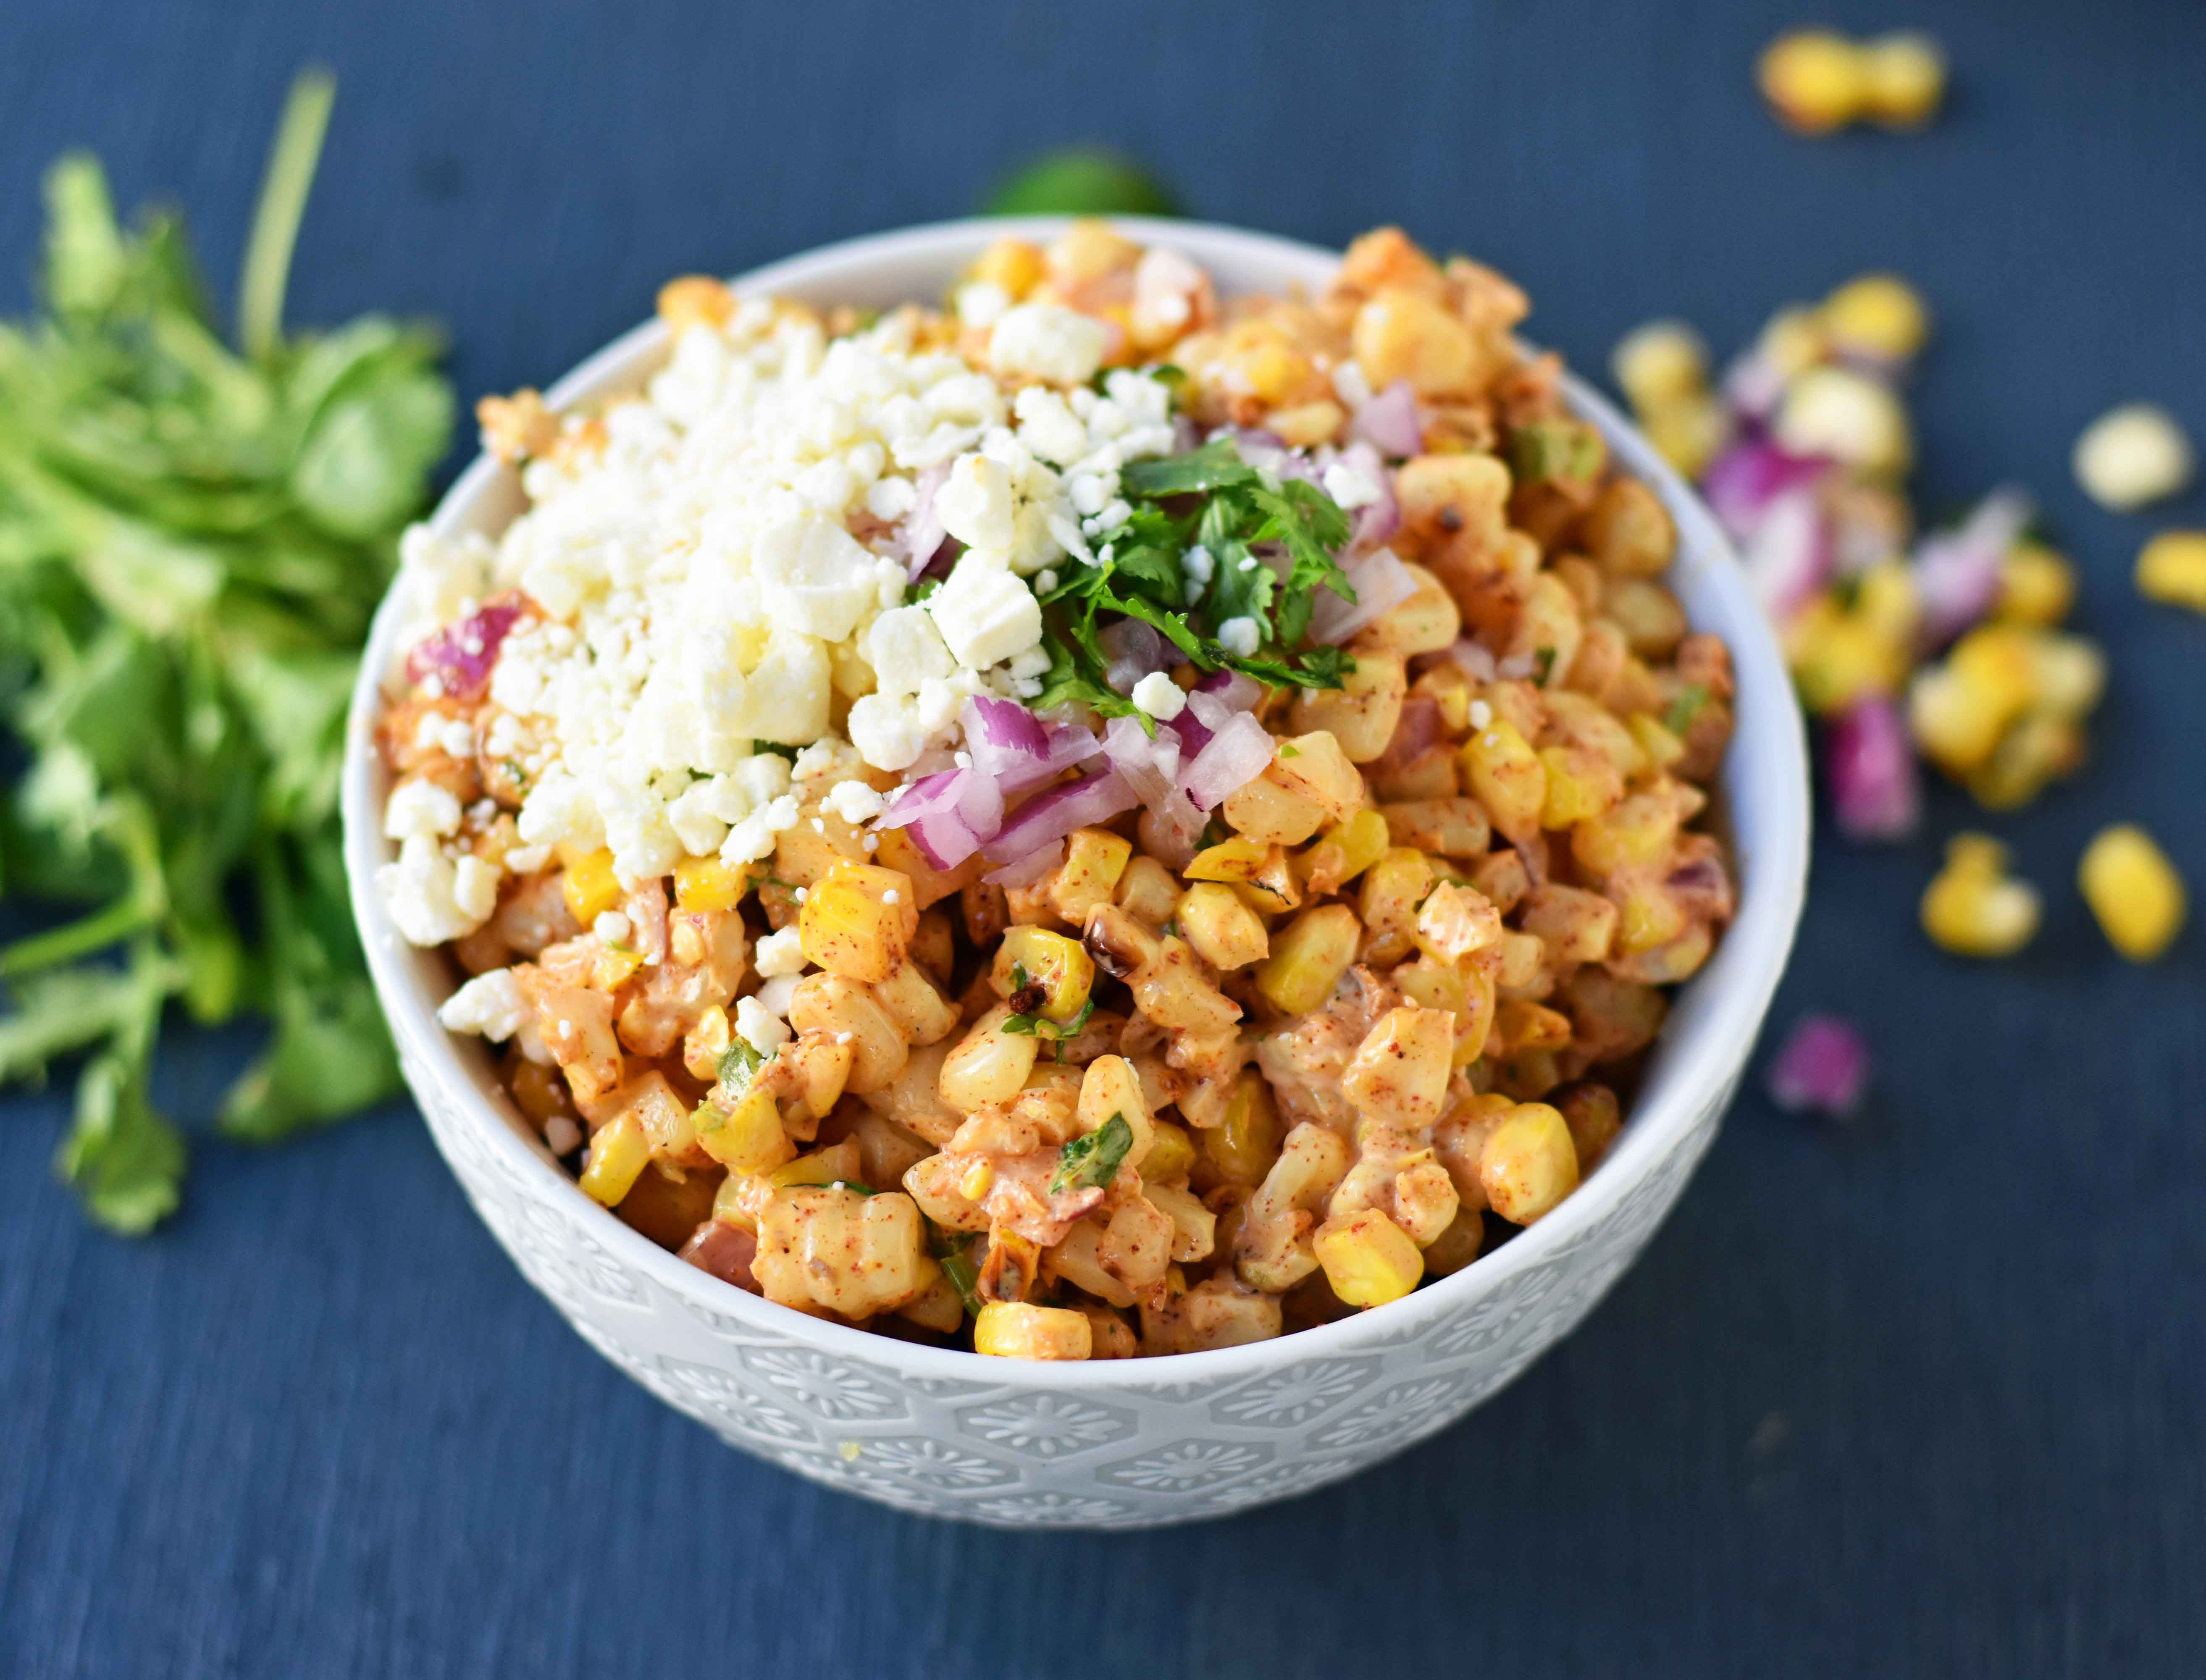 Mexican Street Corn Salad. Mexican Street Corn in a bowl made with roasted corn, mexican spices, lime, cilantro, a touch of mayo, and cotija cheese. A perfect mexican side dish or mexican appetizer. This street corn is great on tacos too! www.modernhoney.com